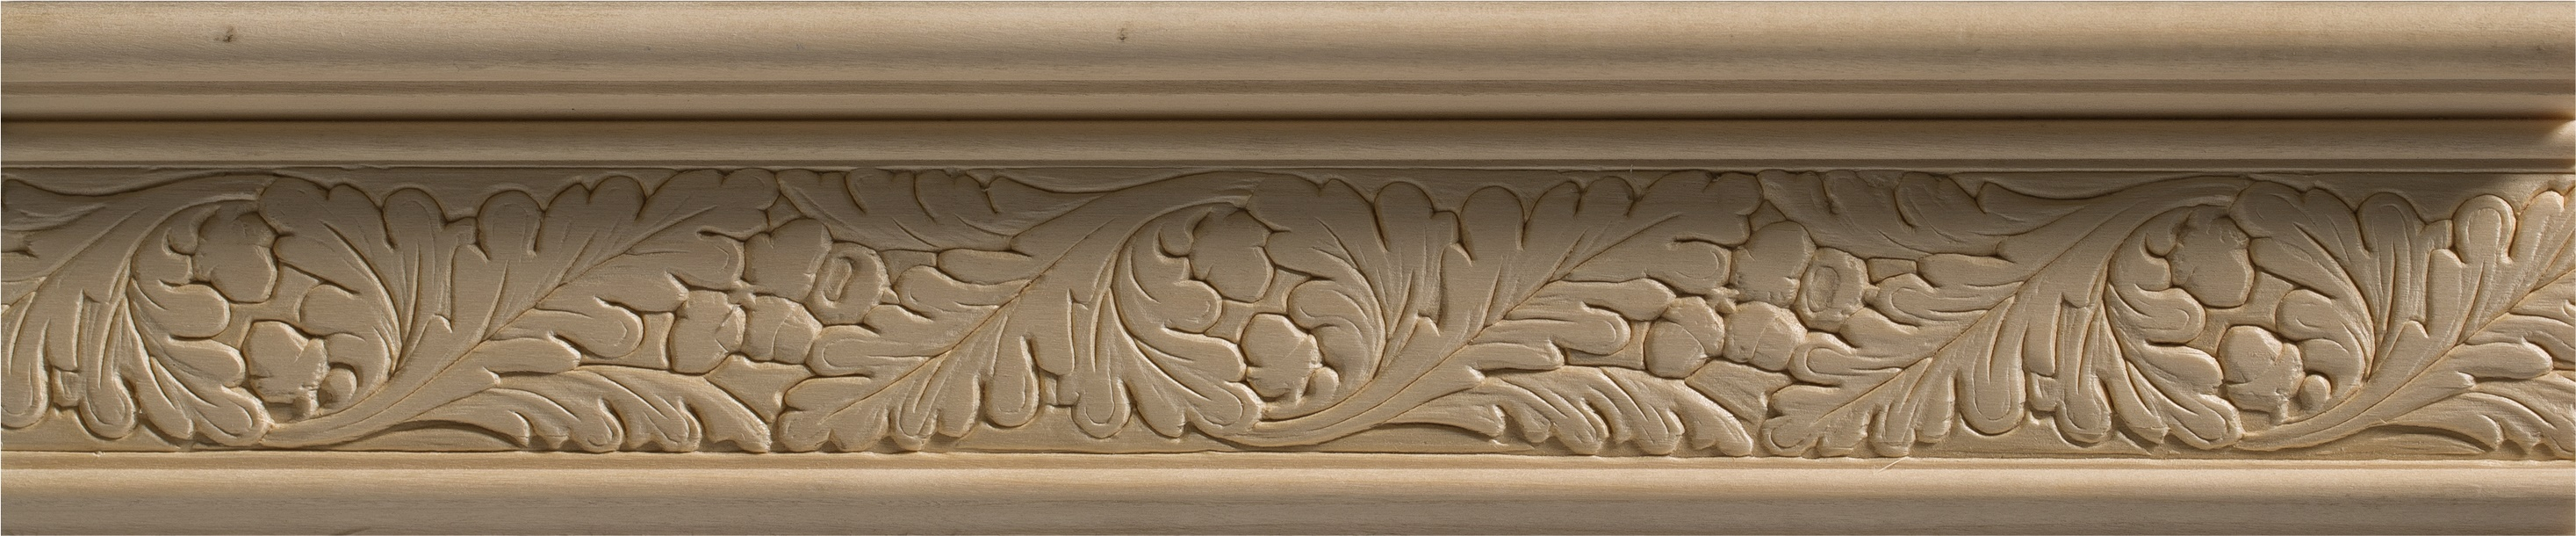 Jaden ornamental mouldings decorative timber mouldings for Decorative millwork accents